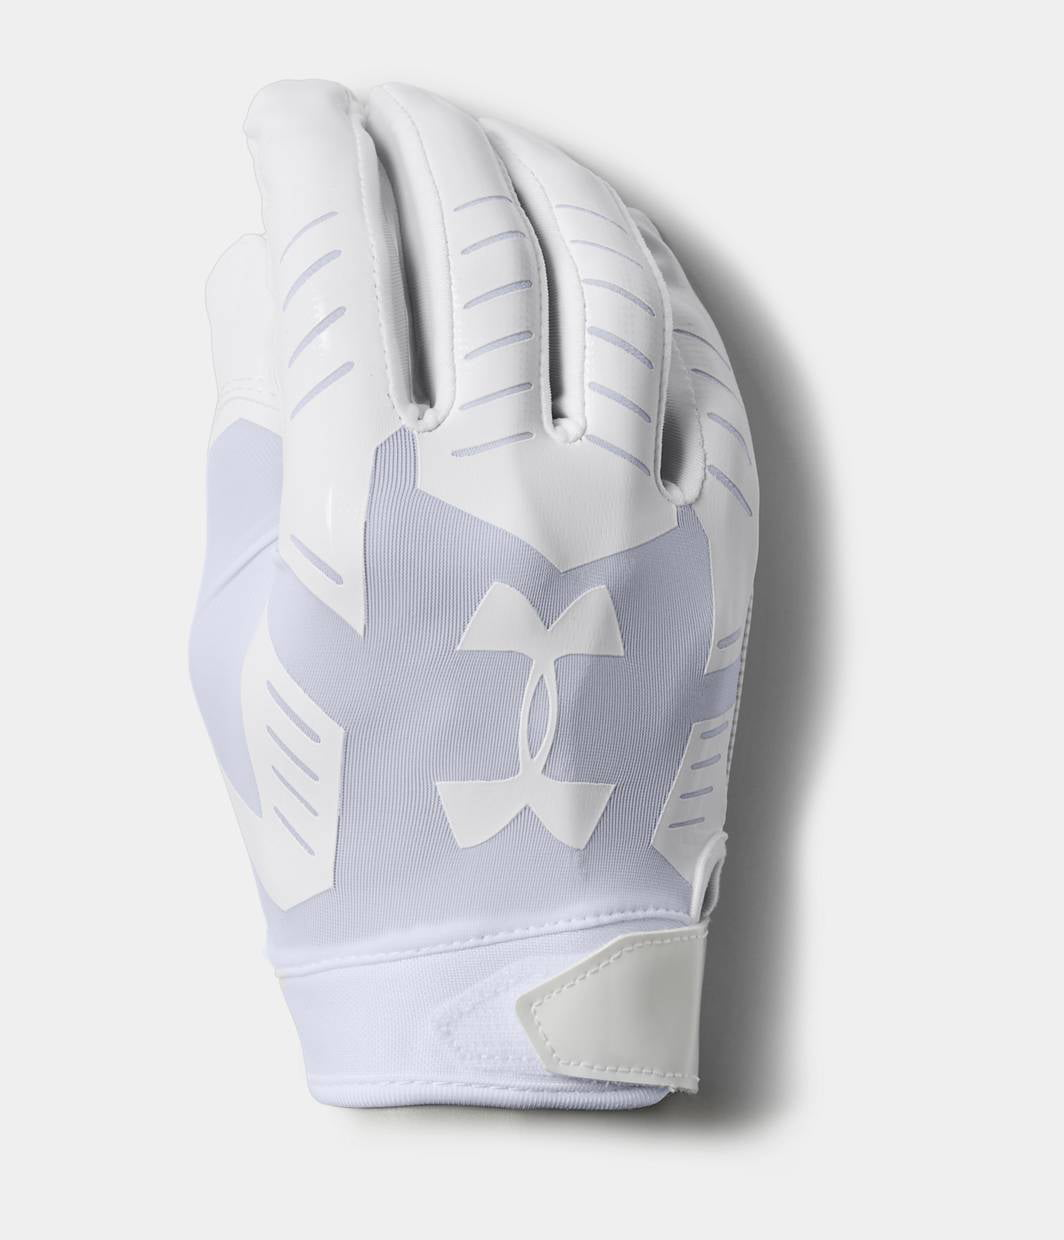 cuero Conexión Concentración  Under Armour - Under Armour Men's UA F6 Football Gloves 1304694-100 White -  Walmart.com - Walmart.com